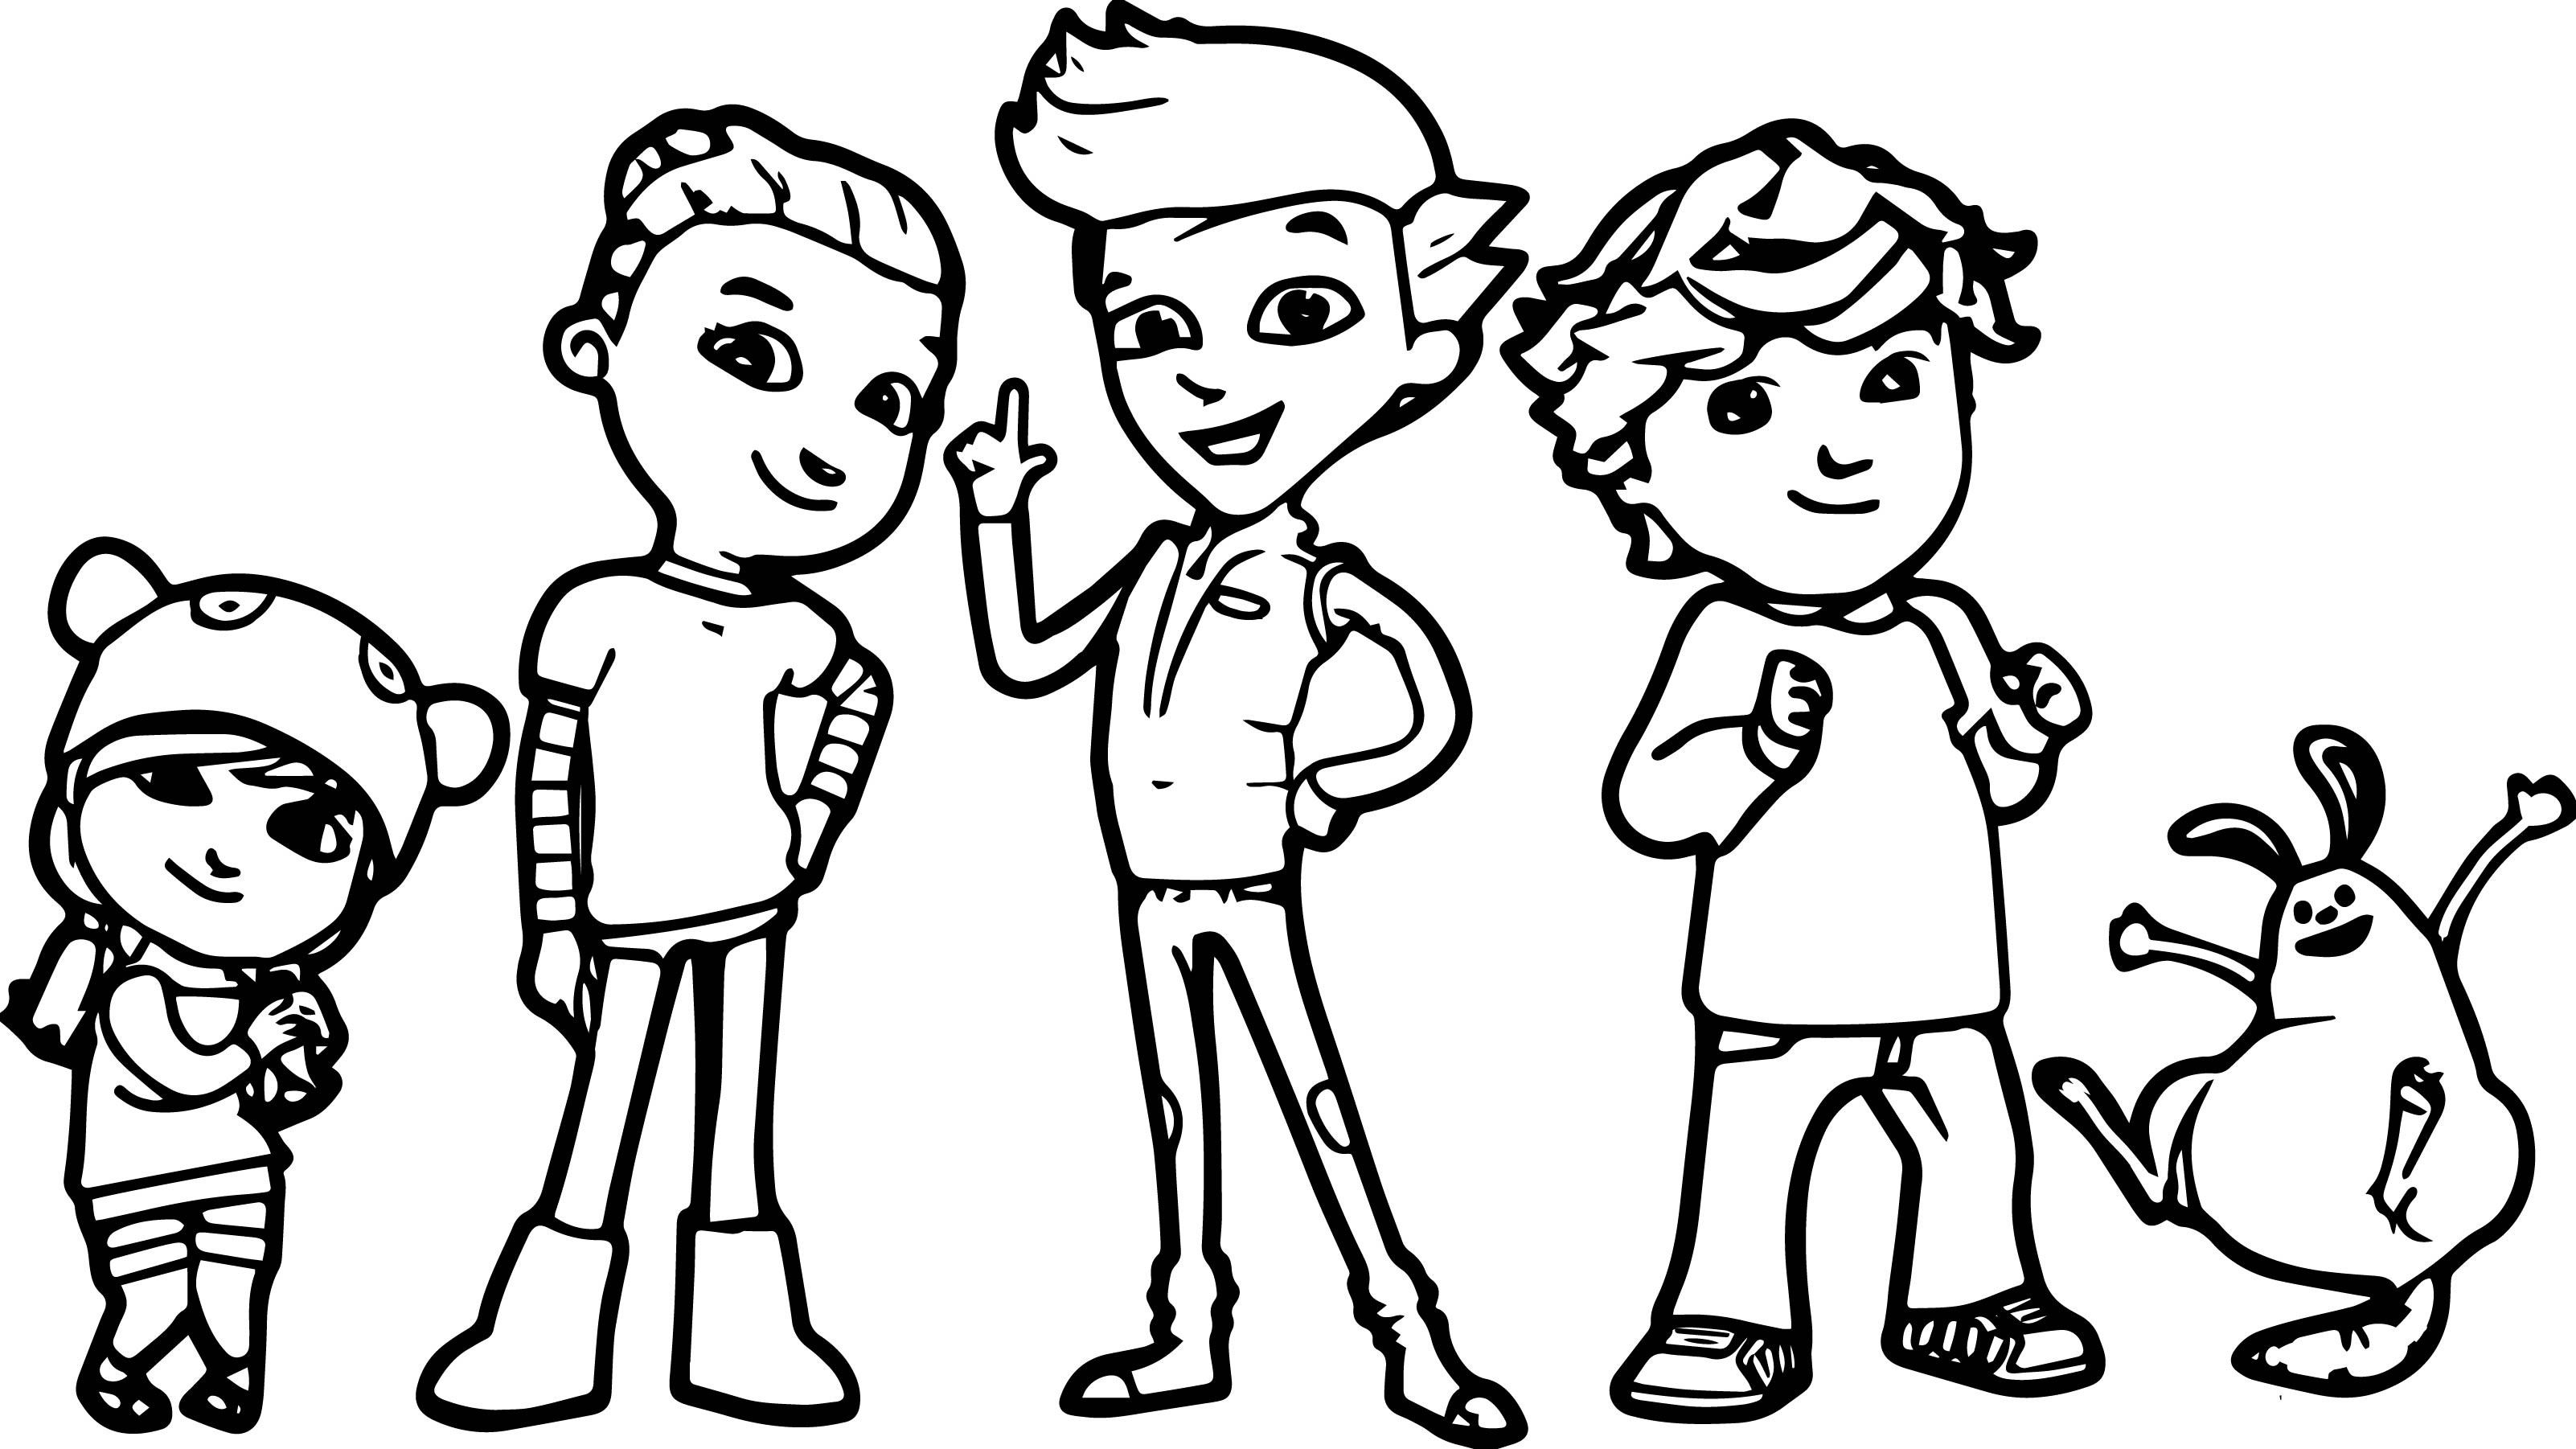 3204x1802 Cloudy With A Chance Of Meatballs Coloring Pages For Kids Elegant